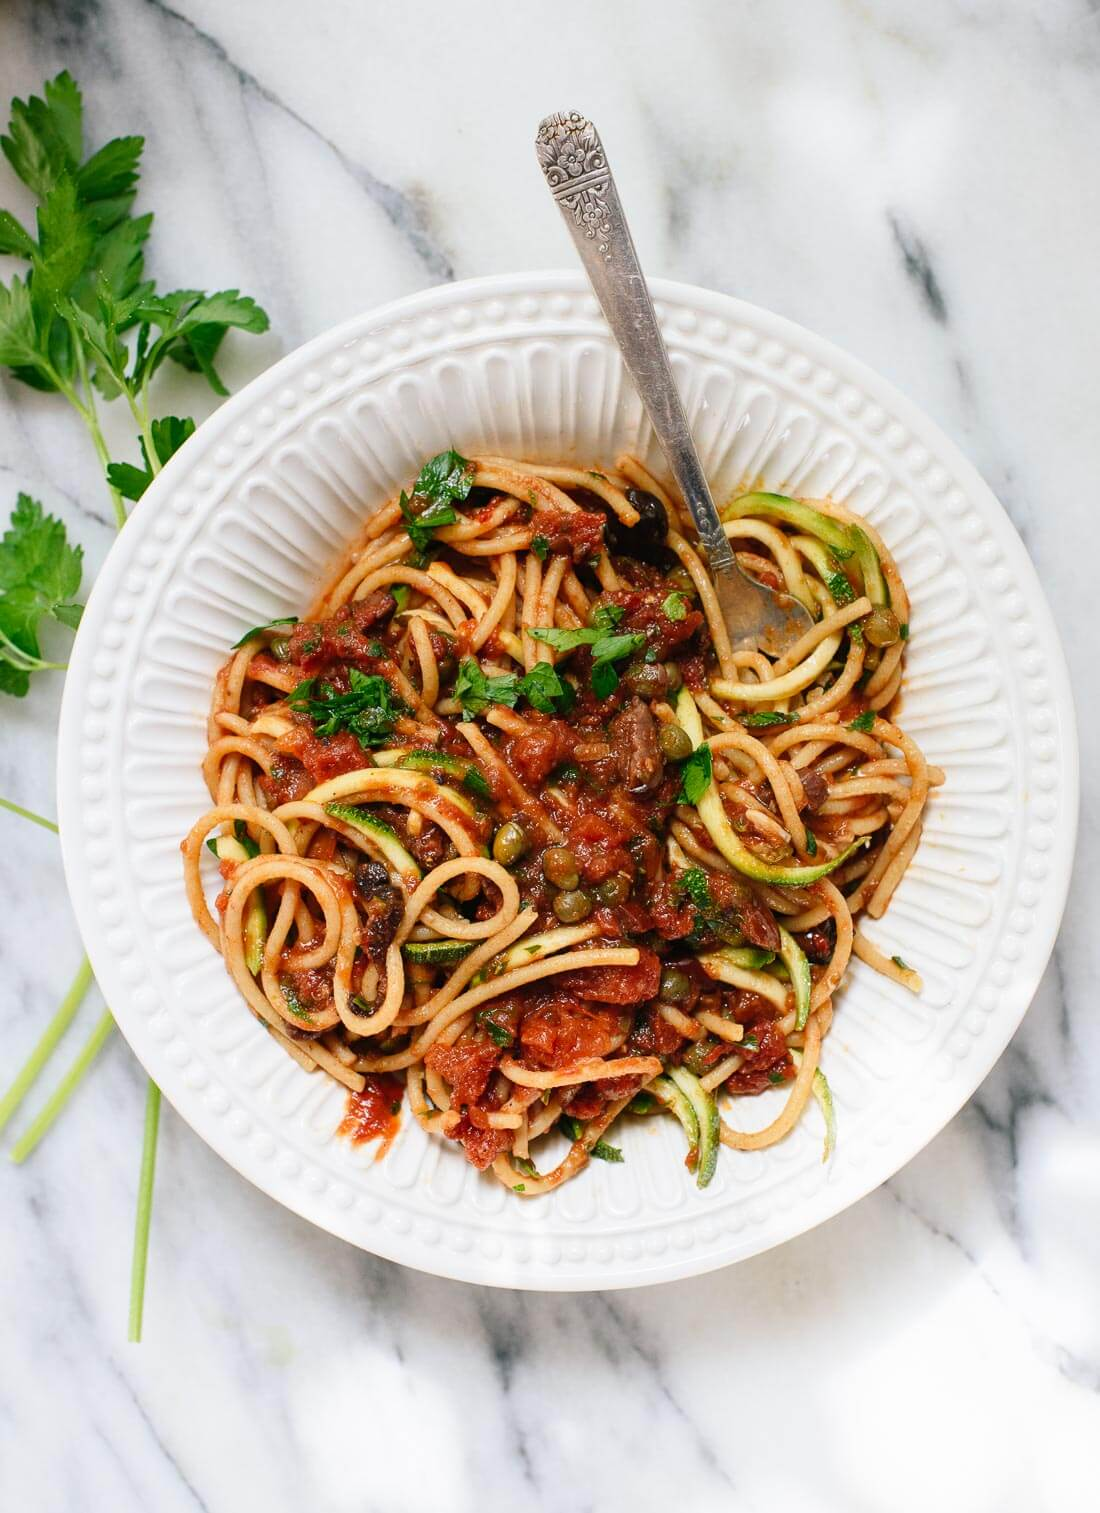 Super simple vegan spaghetti alla puttanesca, a perfect meal for busy weeknight dinners - cookieandkate.com